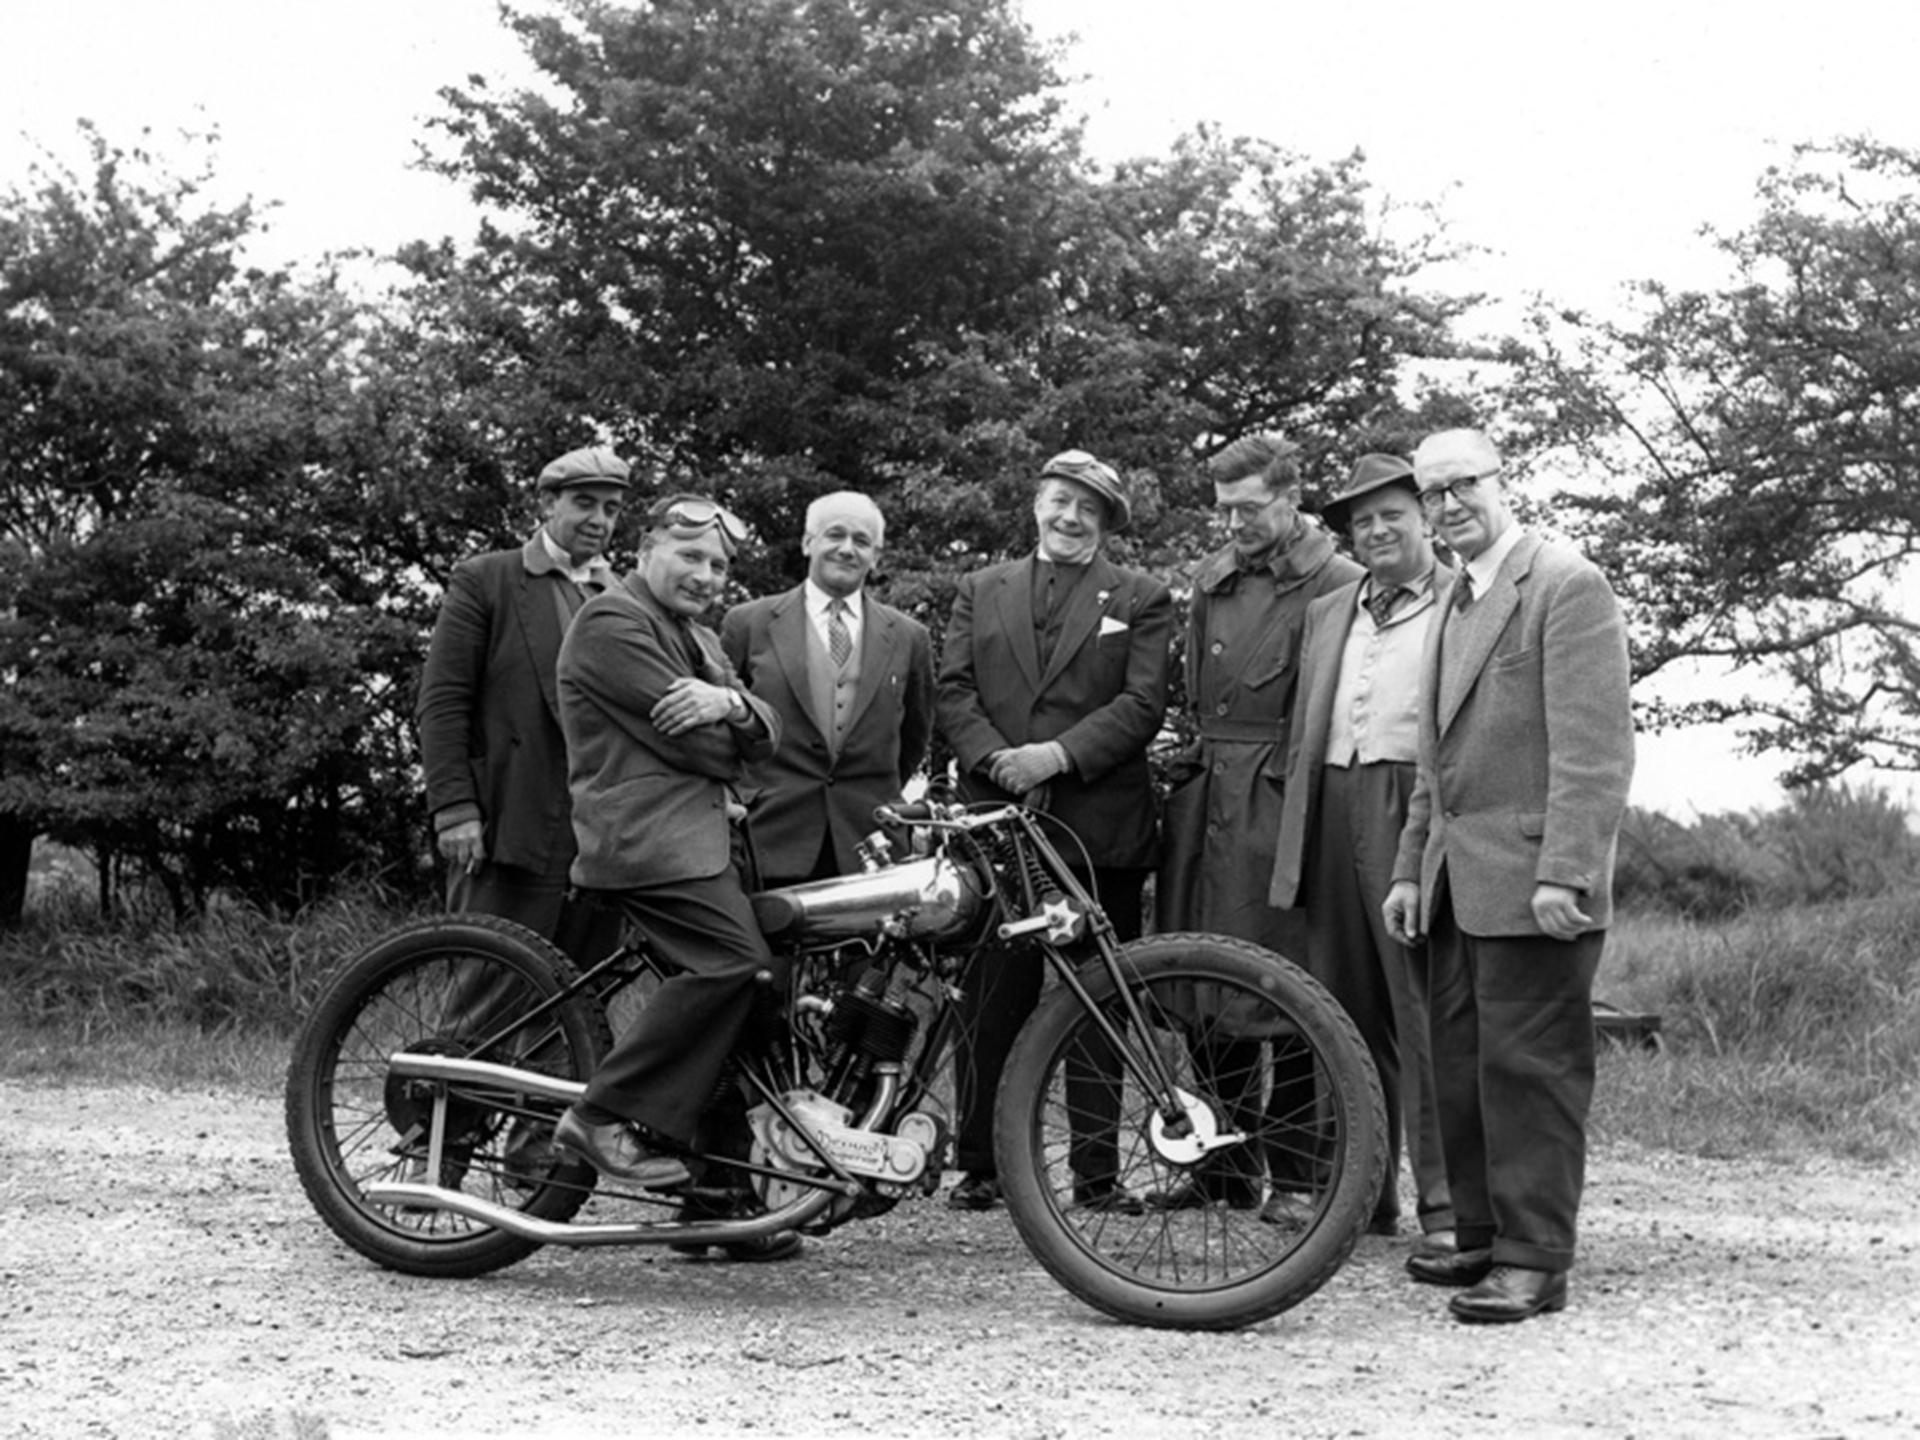 George Brough Motorcycle